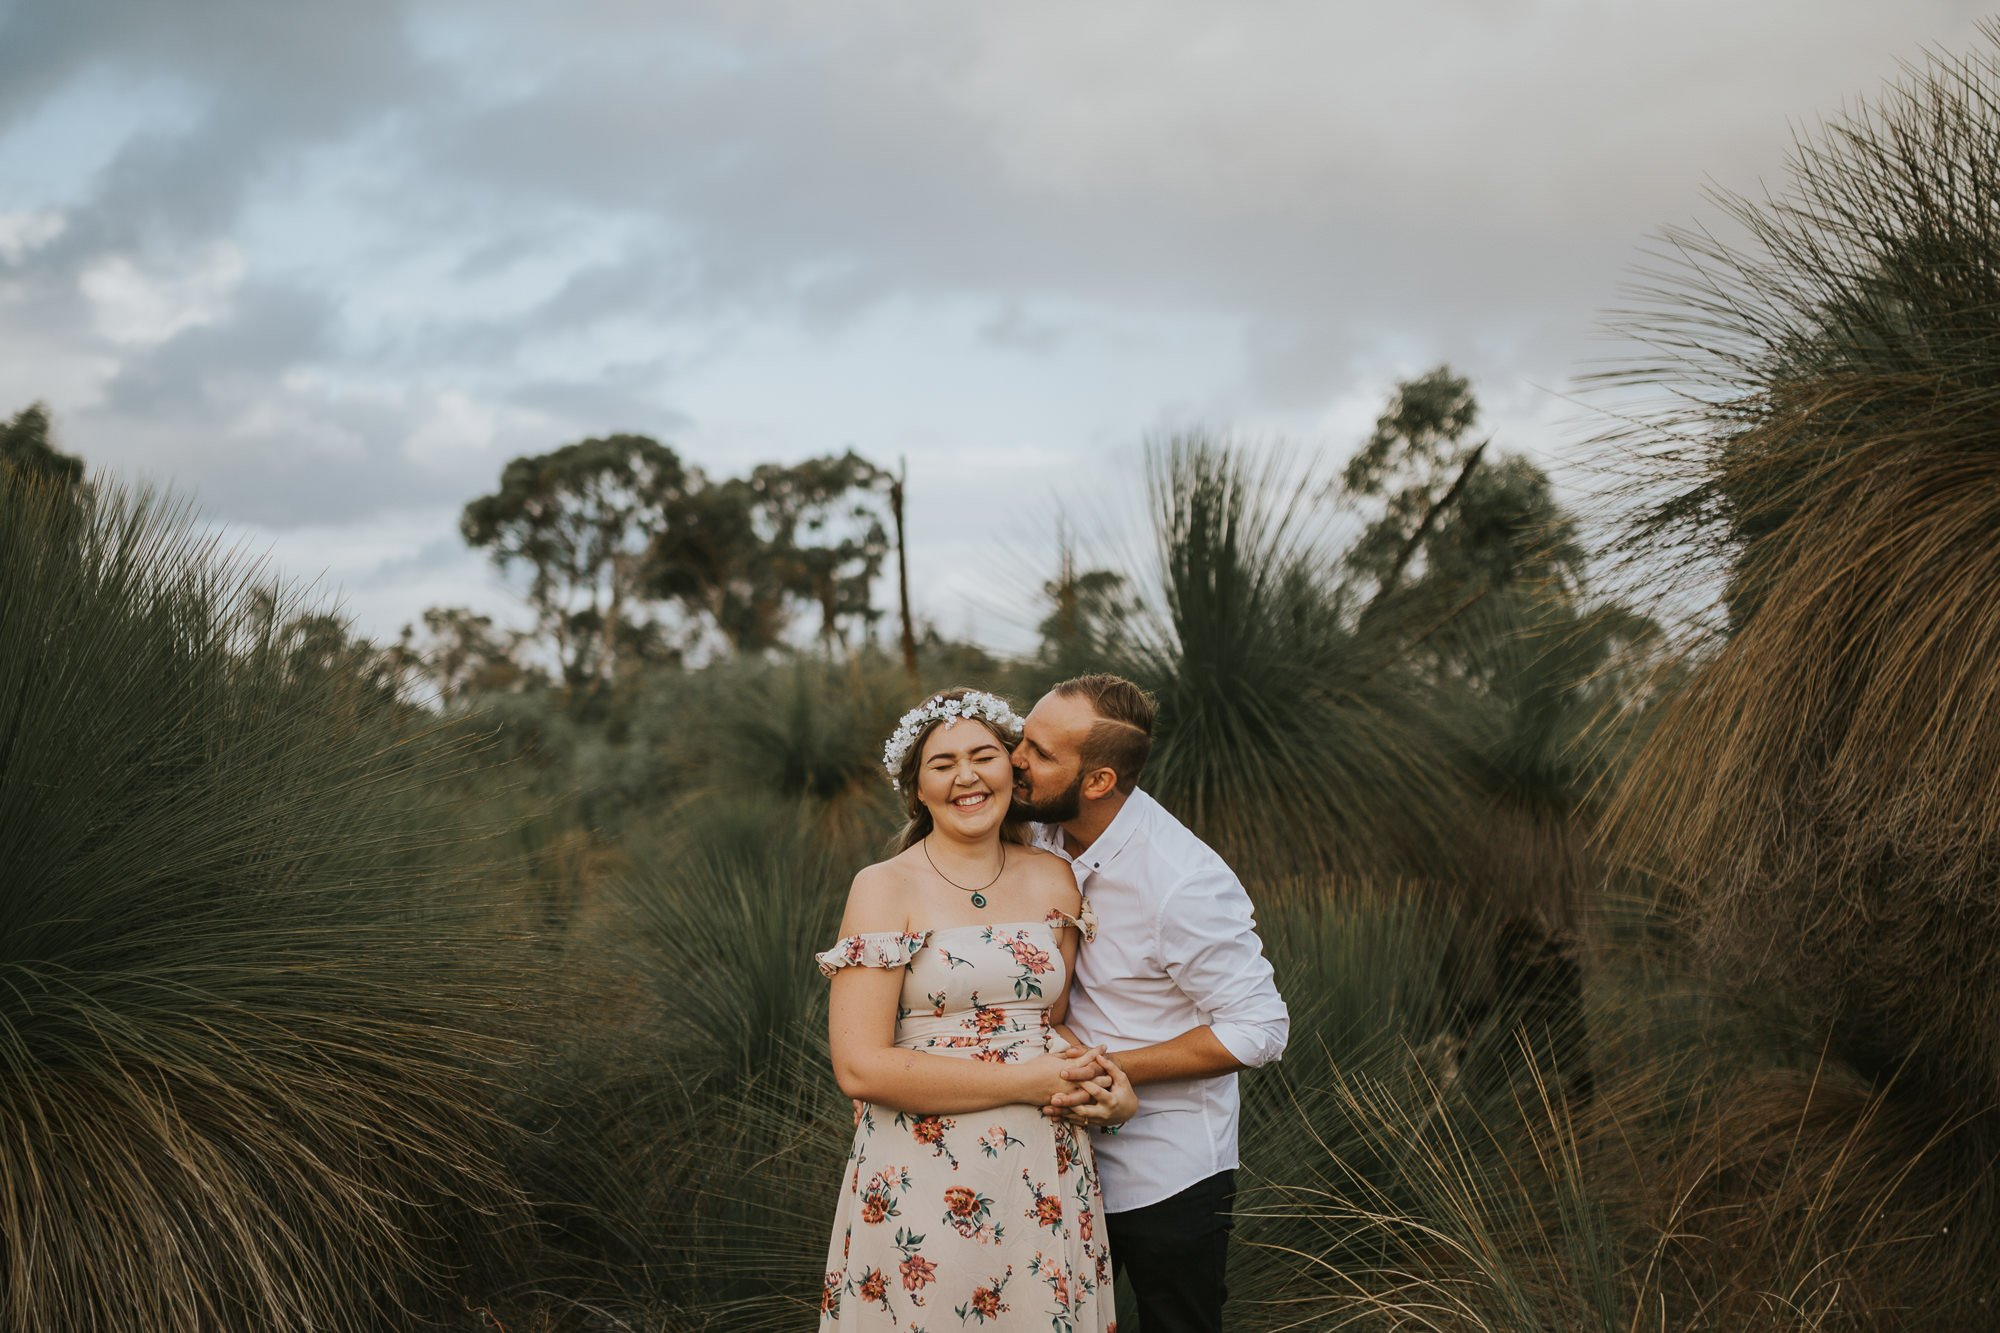 Rockingham Engagement Photography | Bek + Owen | Ebony Blush Photography